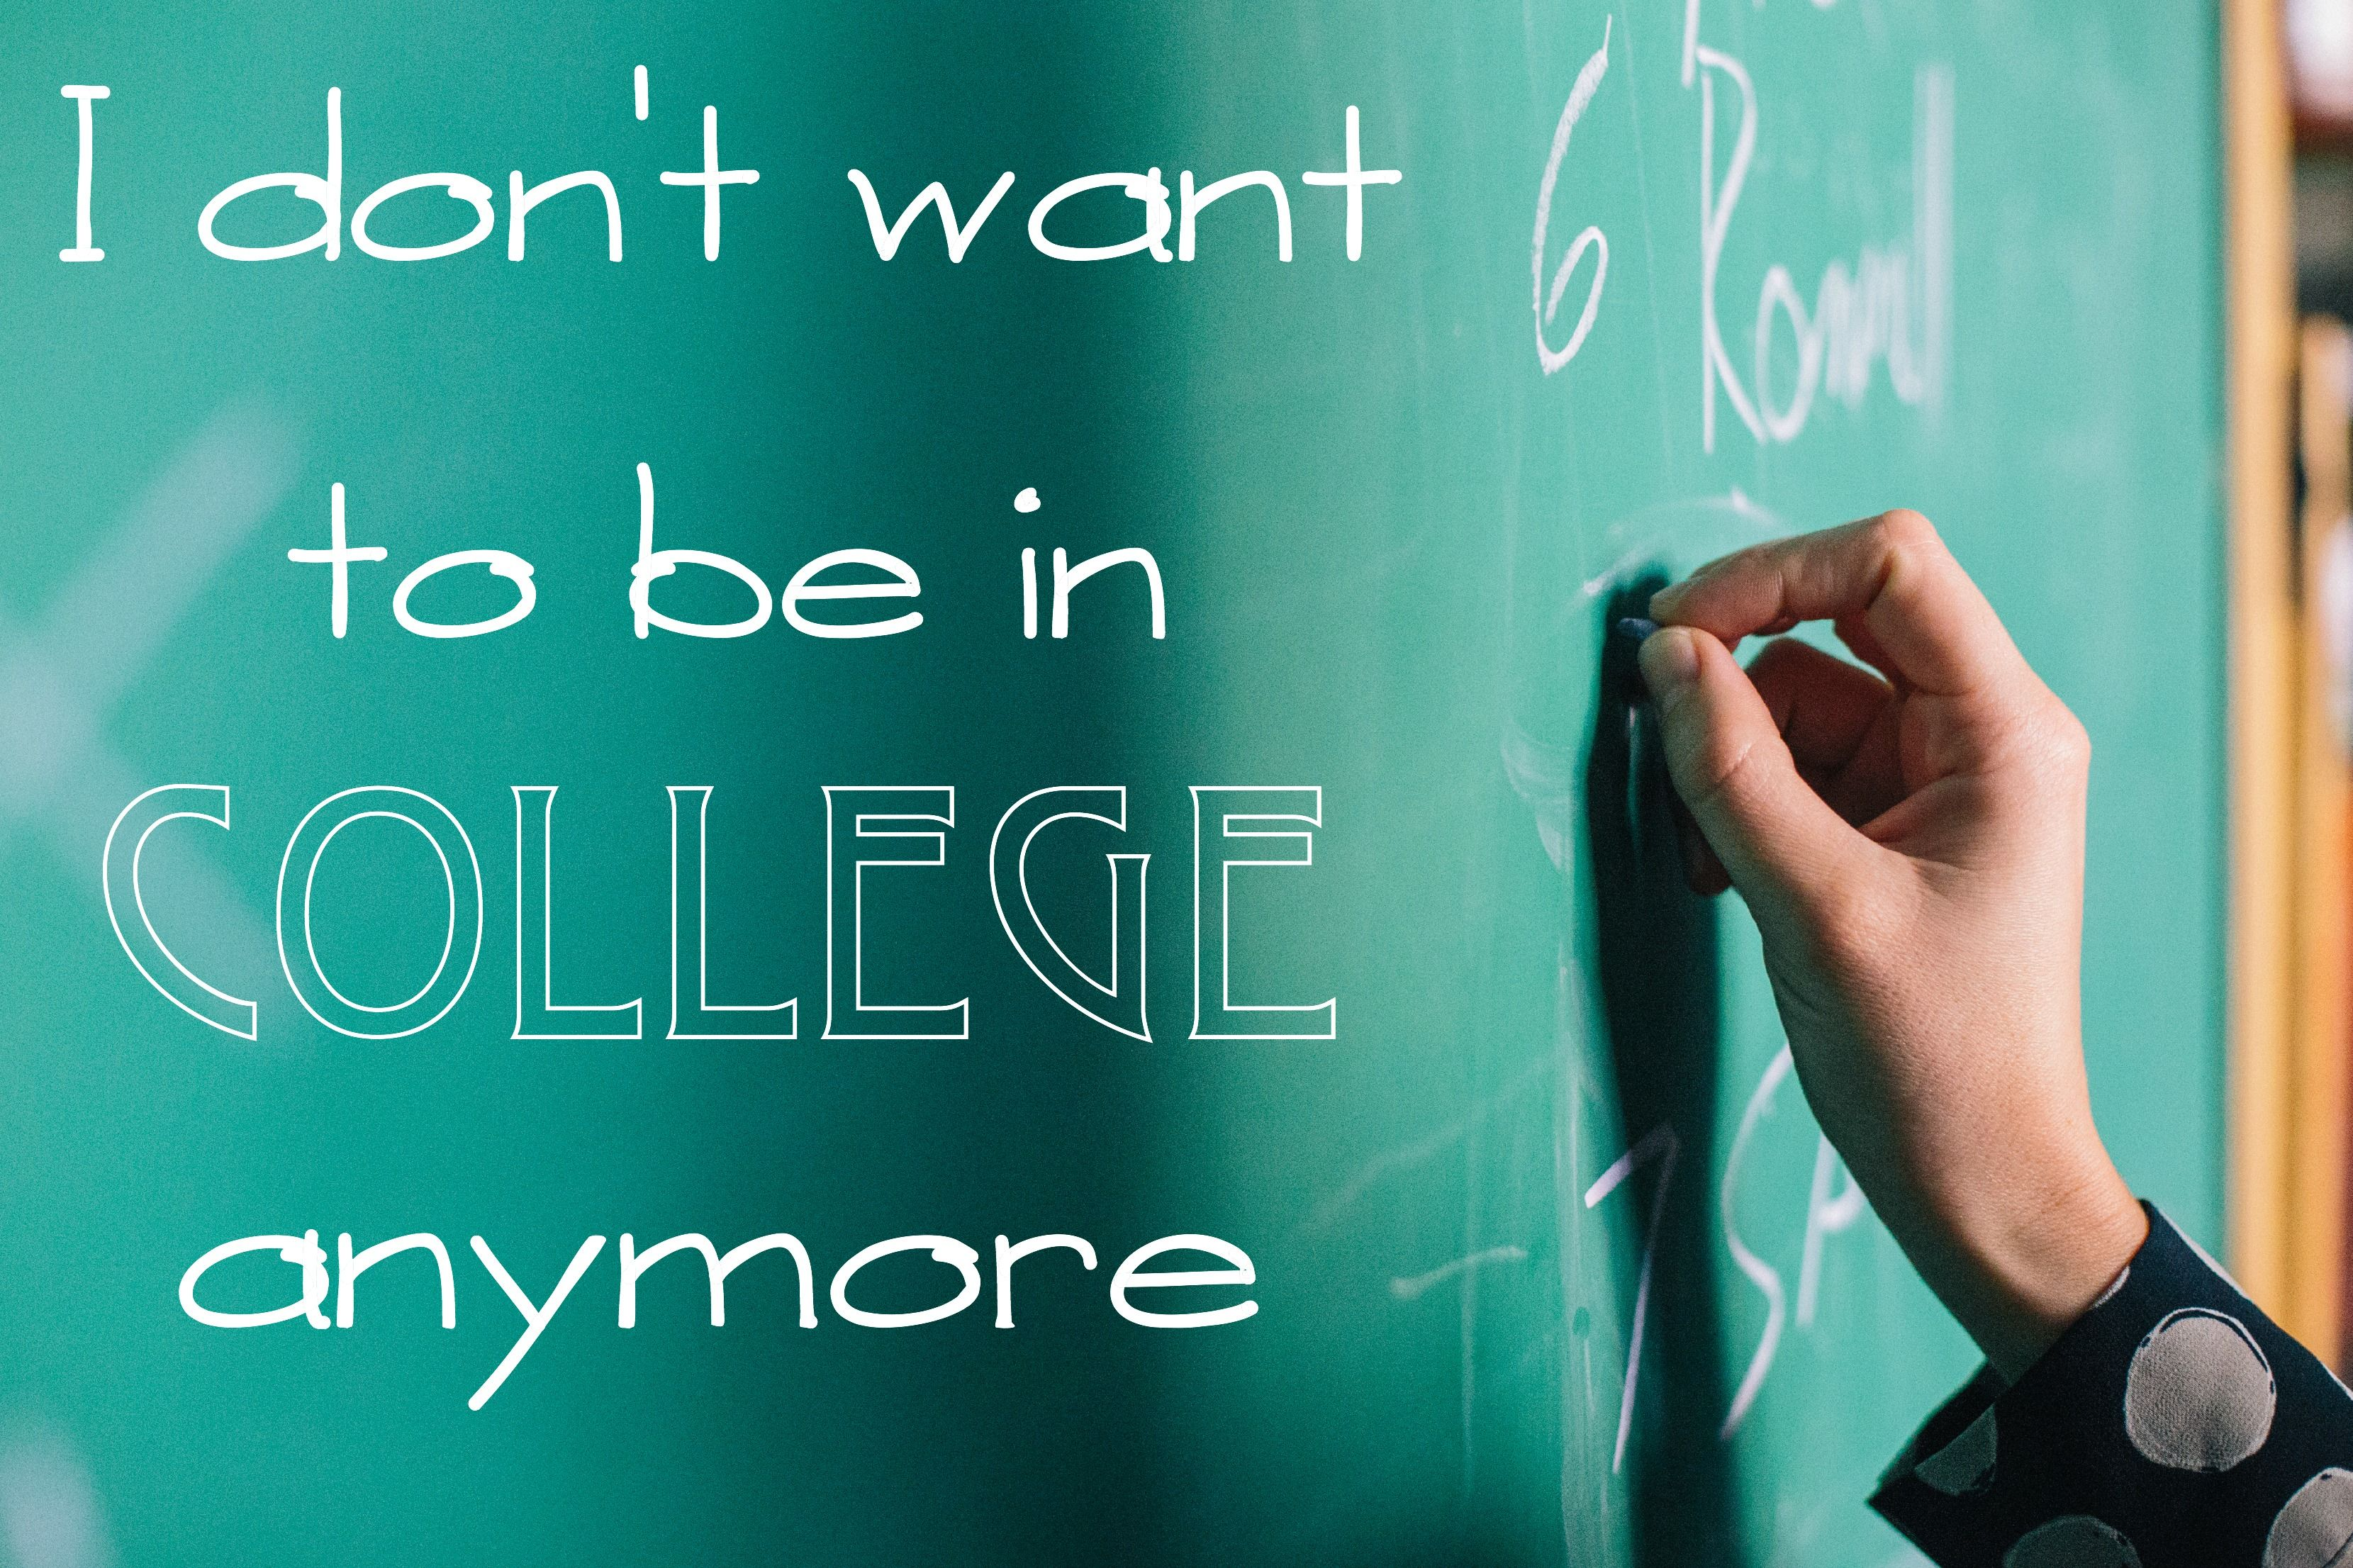 I want to achieve going to the best possible college what should I do?